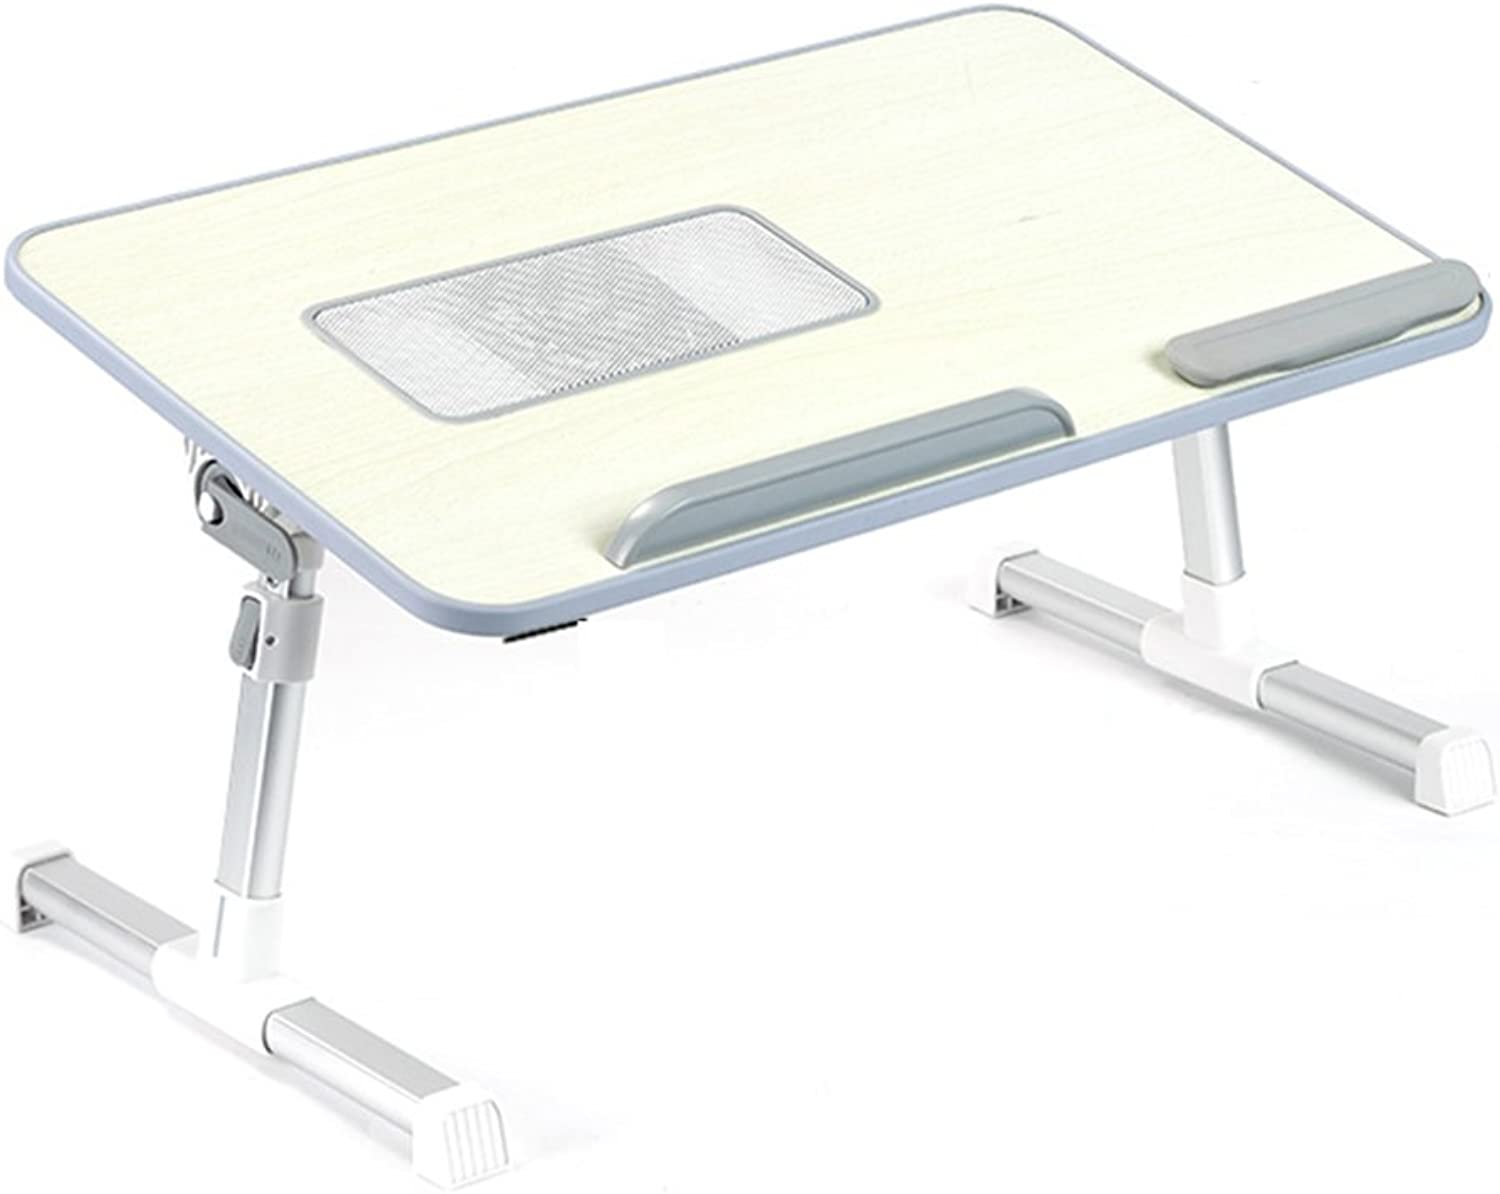 PENGFEI Laptop Stand for Desk Foldable Lazy Bed Table Portable Can Be Raised and Lowered Desktop Can Be Tilted with Cooling Fan College Students Dorm Room, Artificial Board 2 Sizes